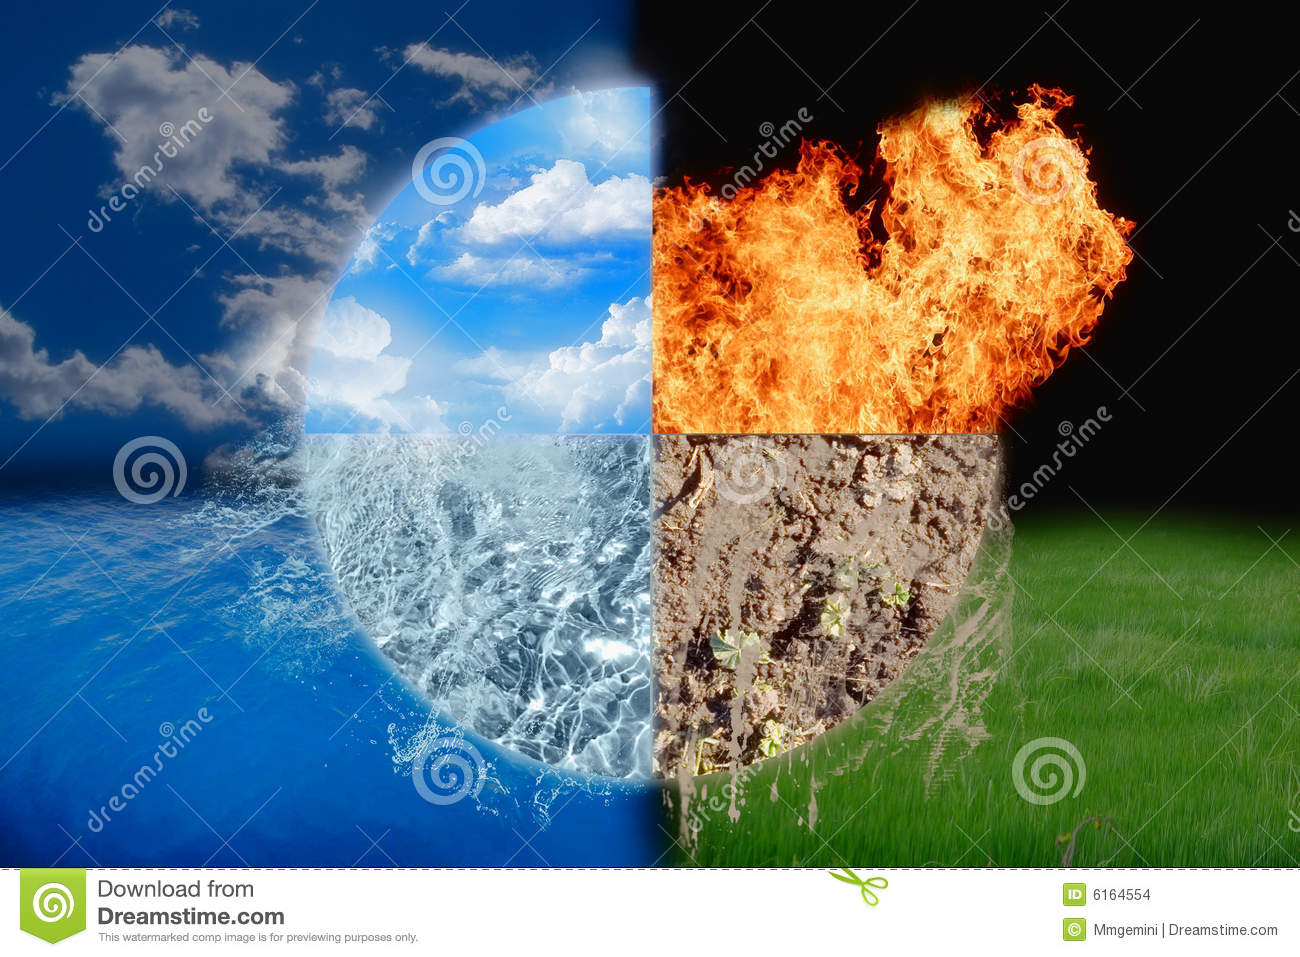 Water Fire Clef Raw Emotion Passion: Four Elements Stock Images